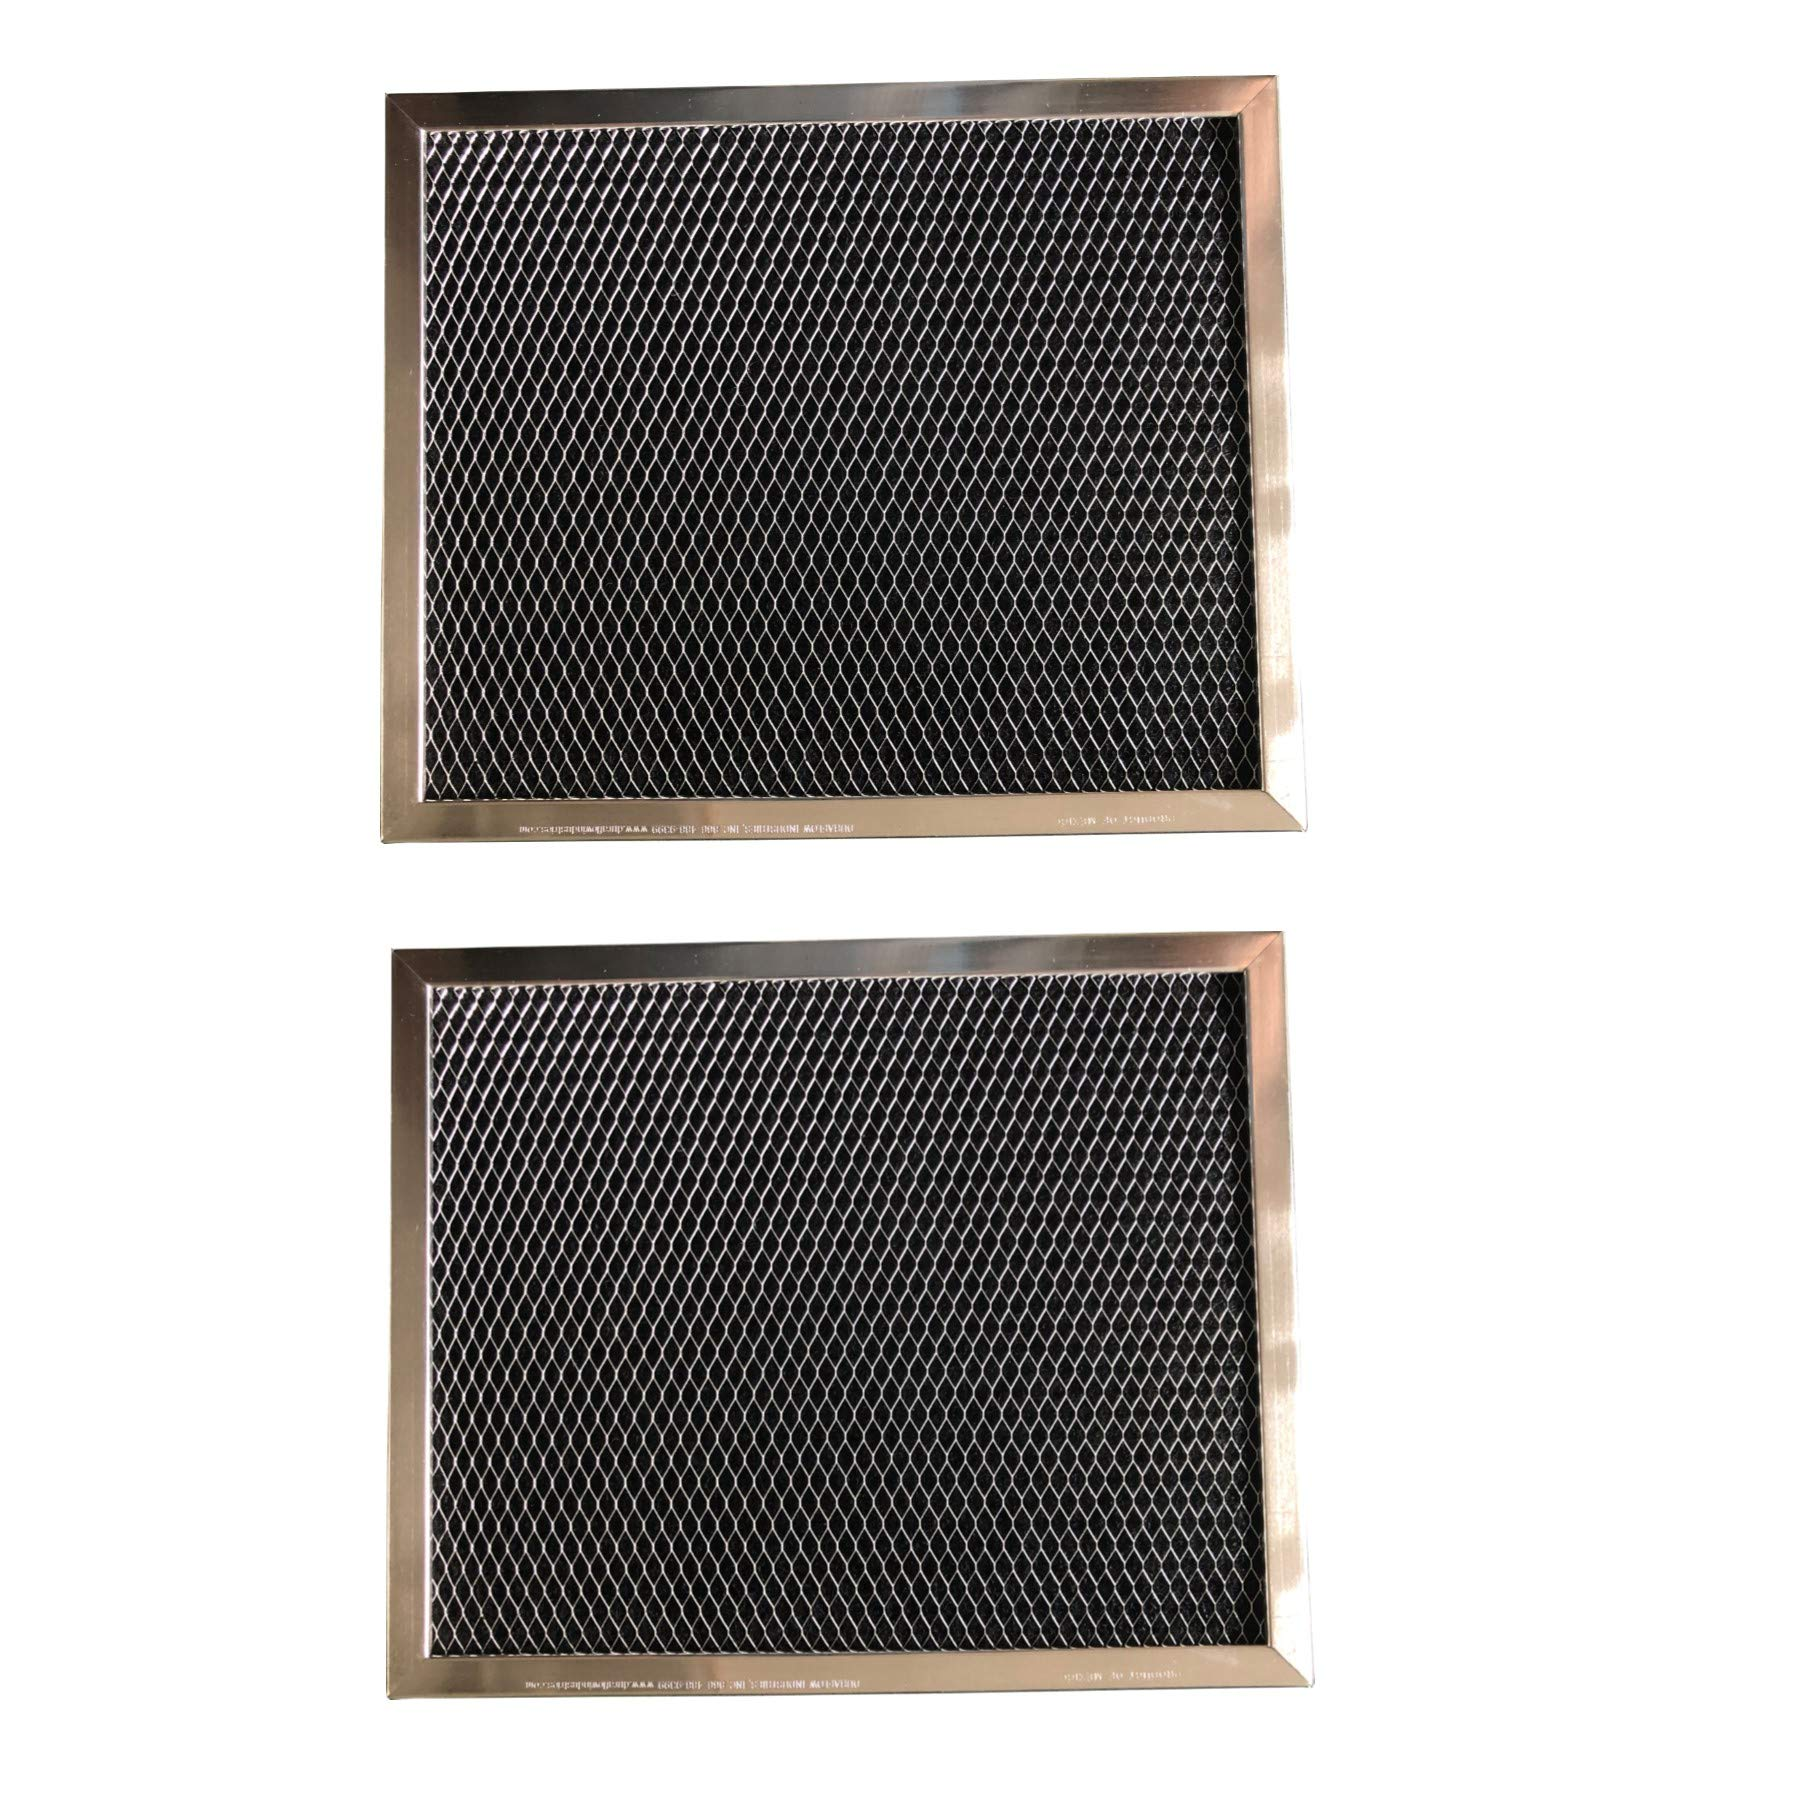 Replacement Carbon Filters compatible with Broan: 99010123, 97007696, 97005687 Caloric: Gem: 88152 R